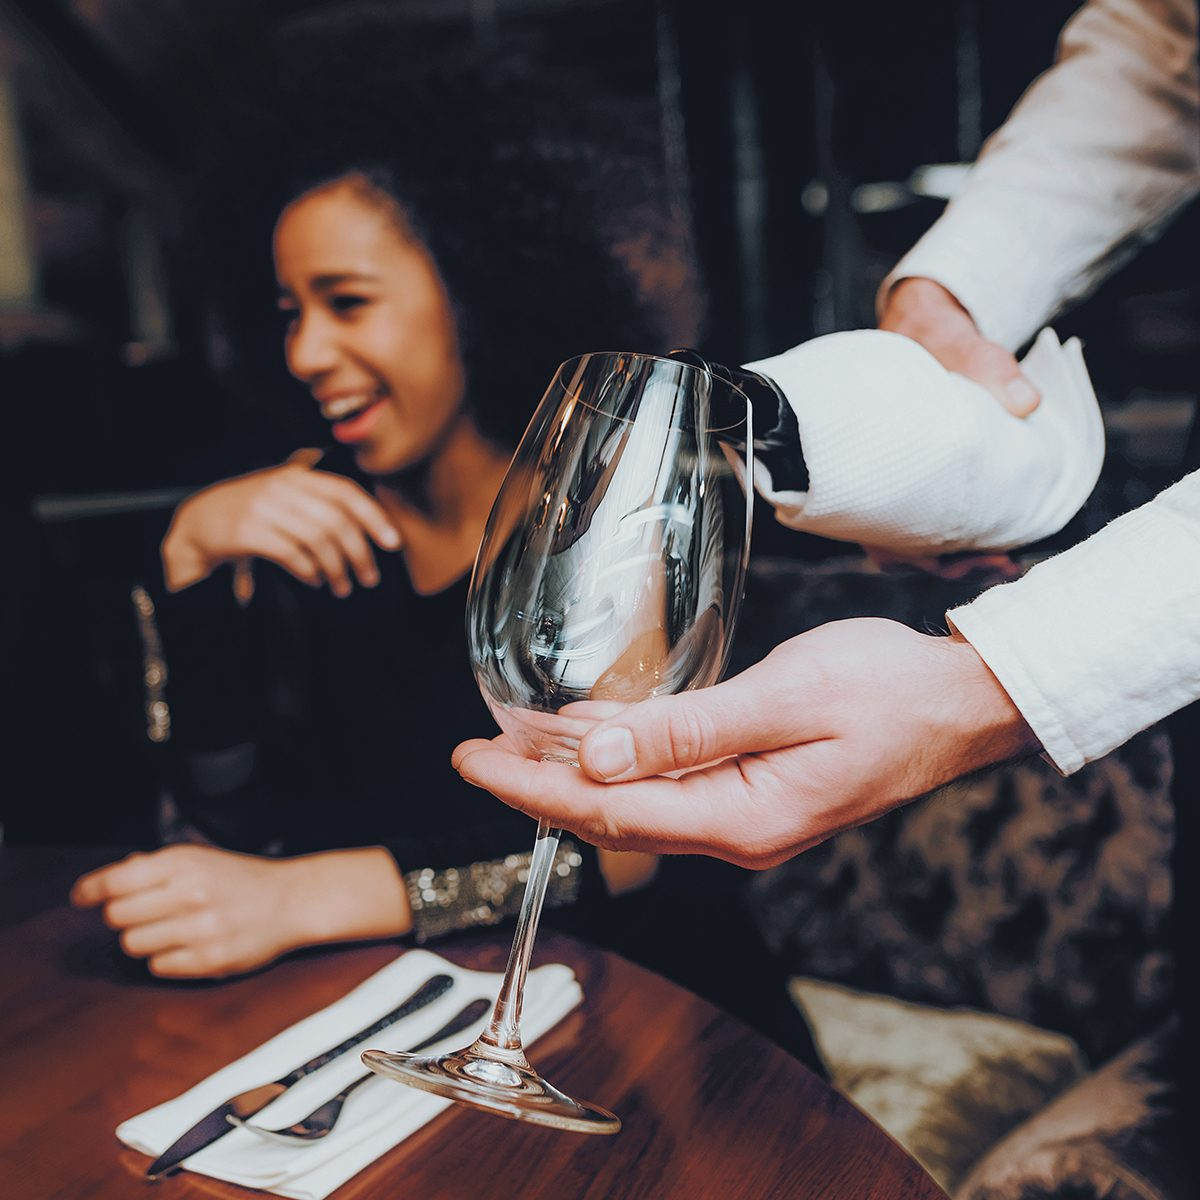 Waiter Pouring Wine to Glass Couple in Restaurant.